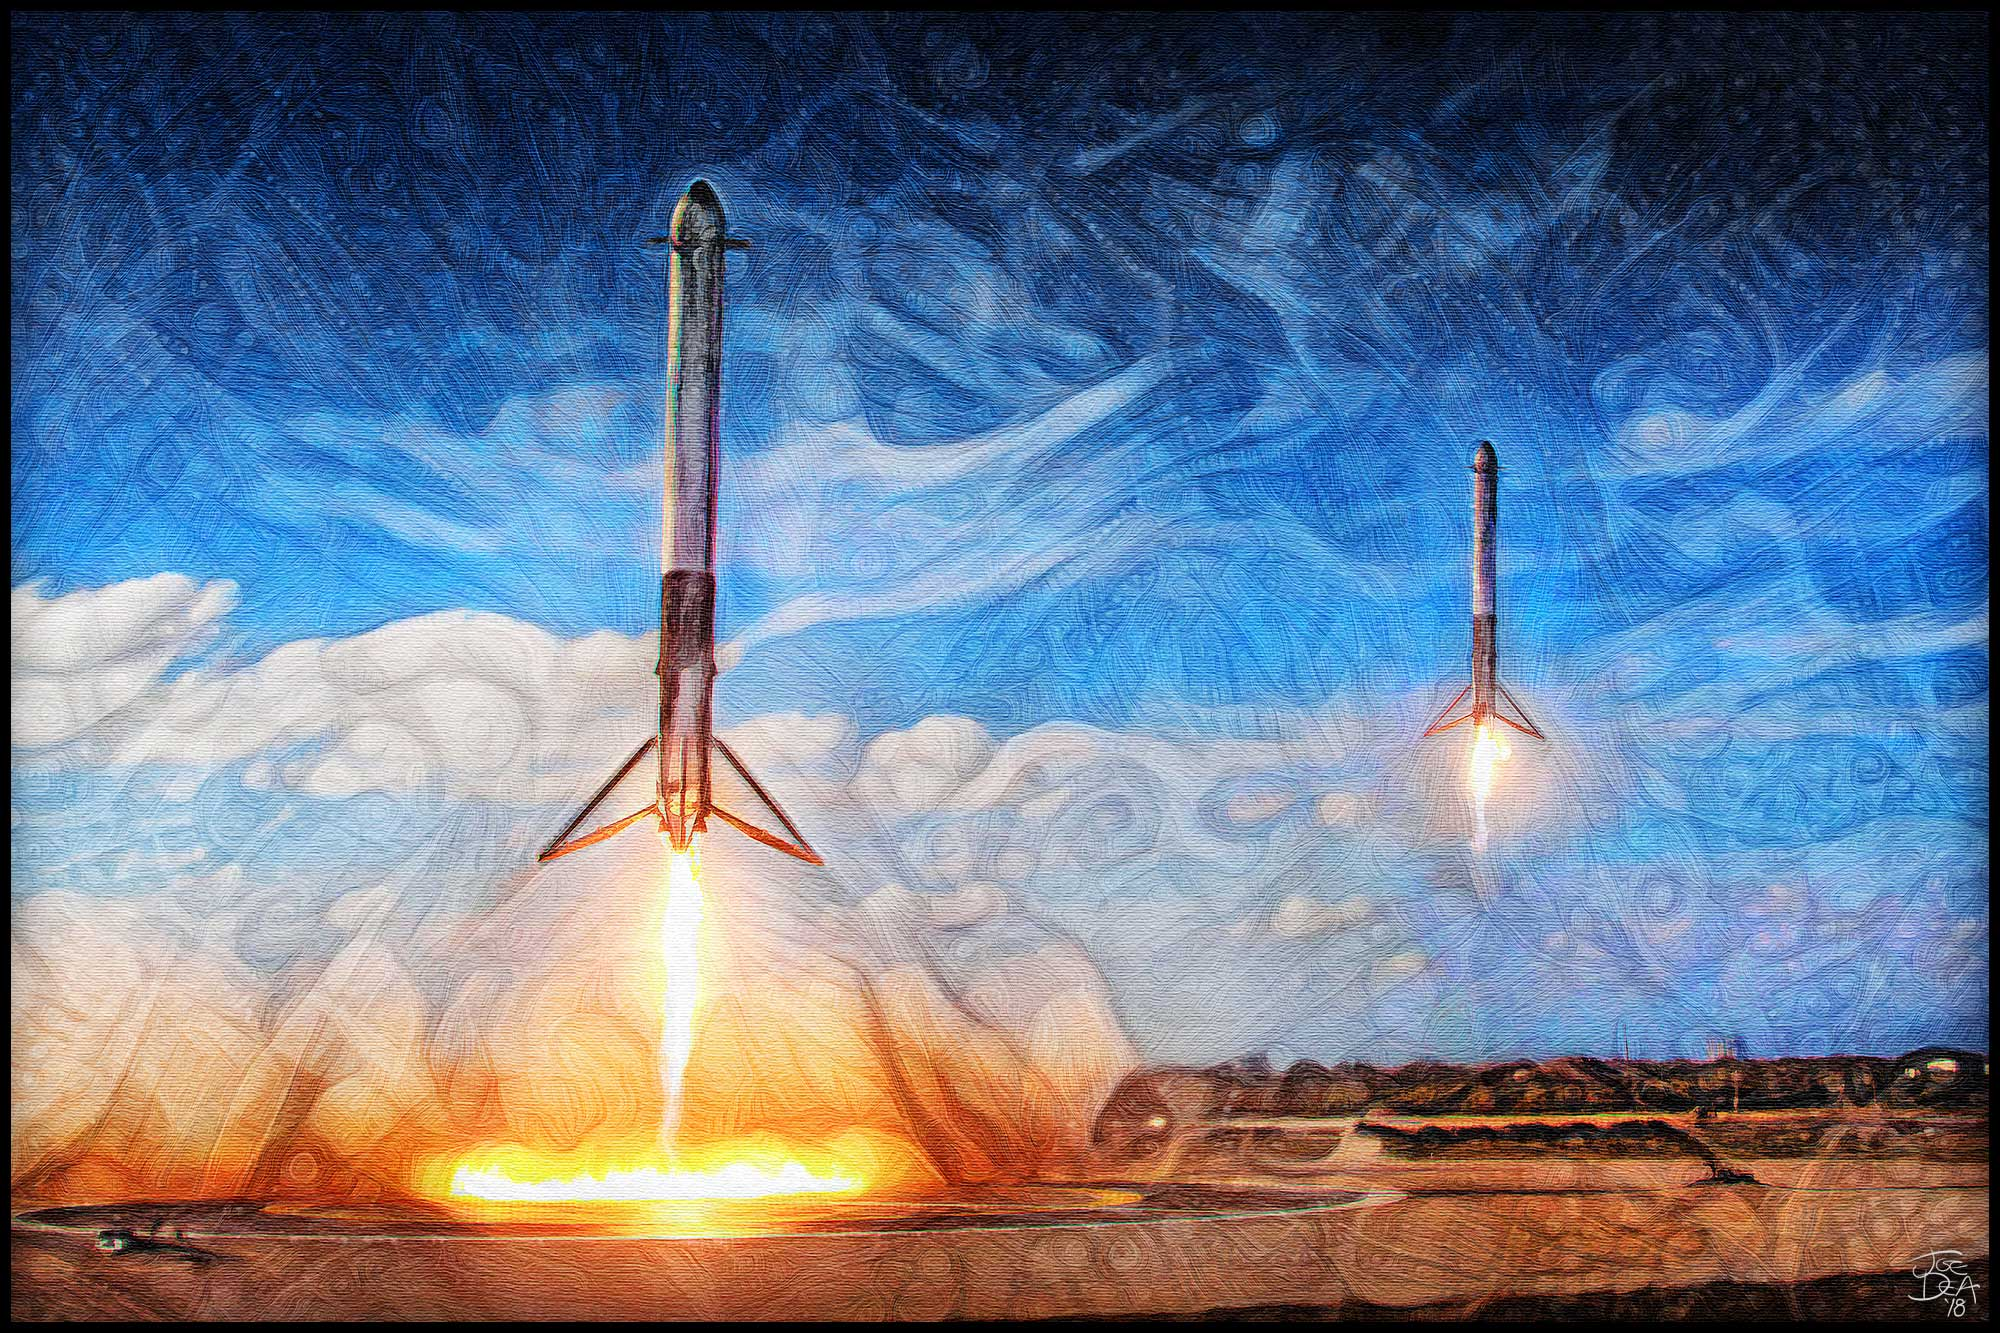 Joe_Dea_SpaceX_Falcon_Heavy_Double_Landing_Painting_2018web.jpg